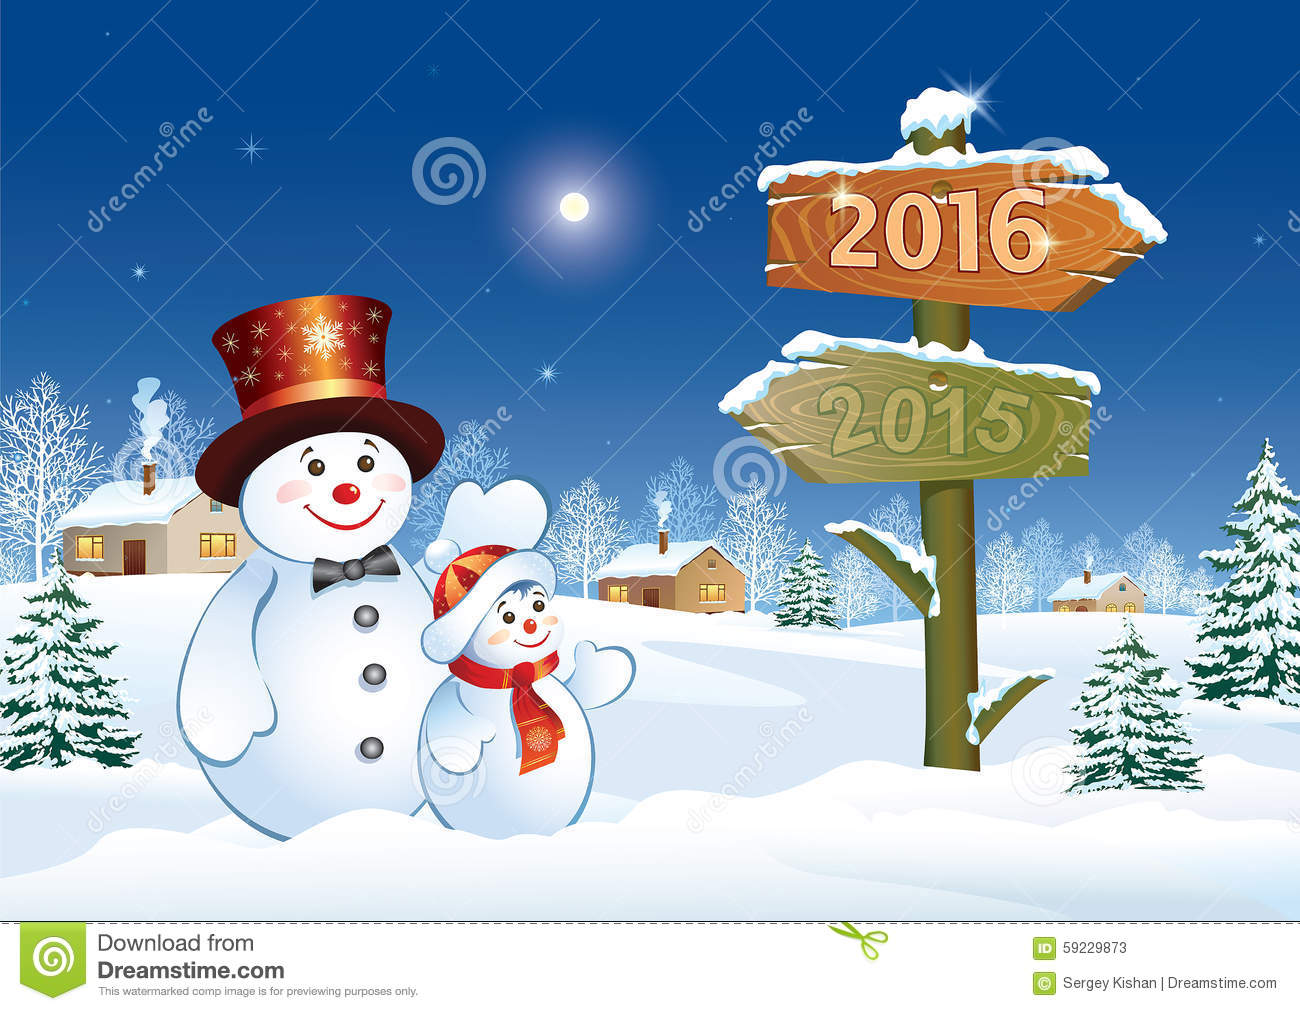 Happy New Year 2016 With Snowmen Stock Vector - Image: 59229873